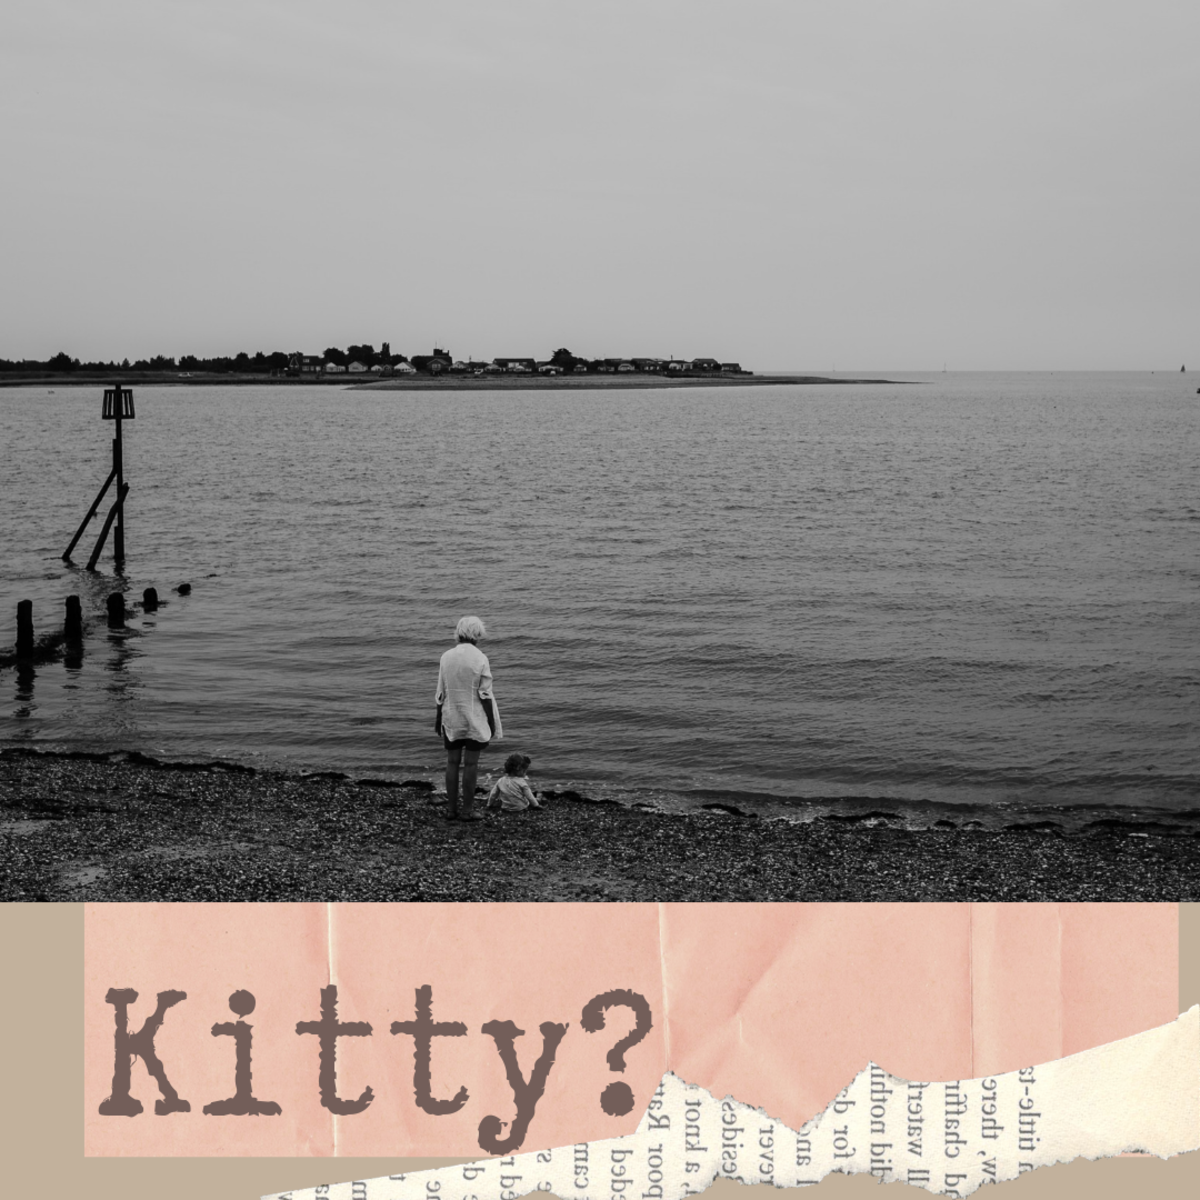 Are you a Kitty?